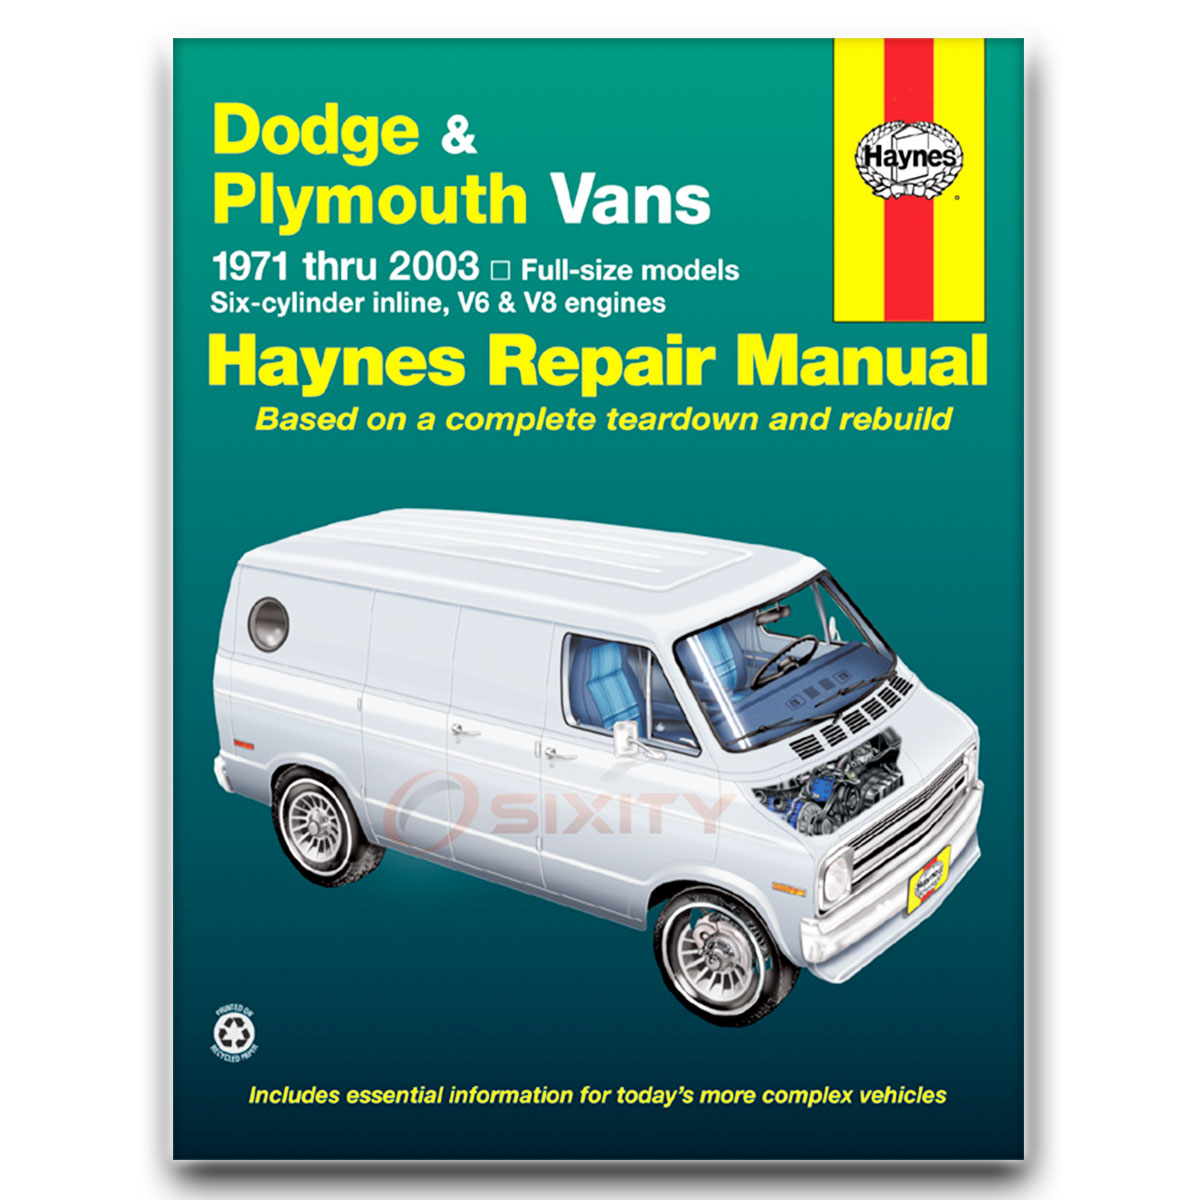 Haynes Repair Manual for Dodge Ram 1500 Van Base Shop Service Garage Book yw